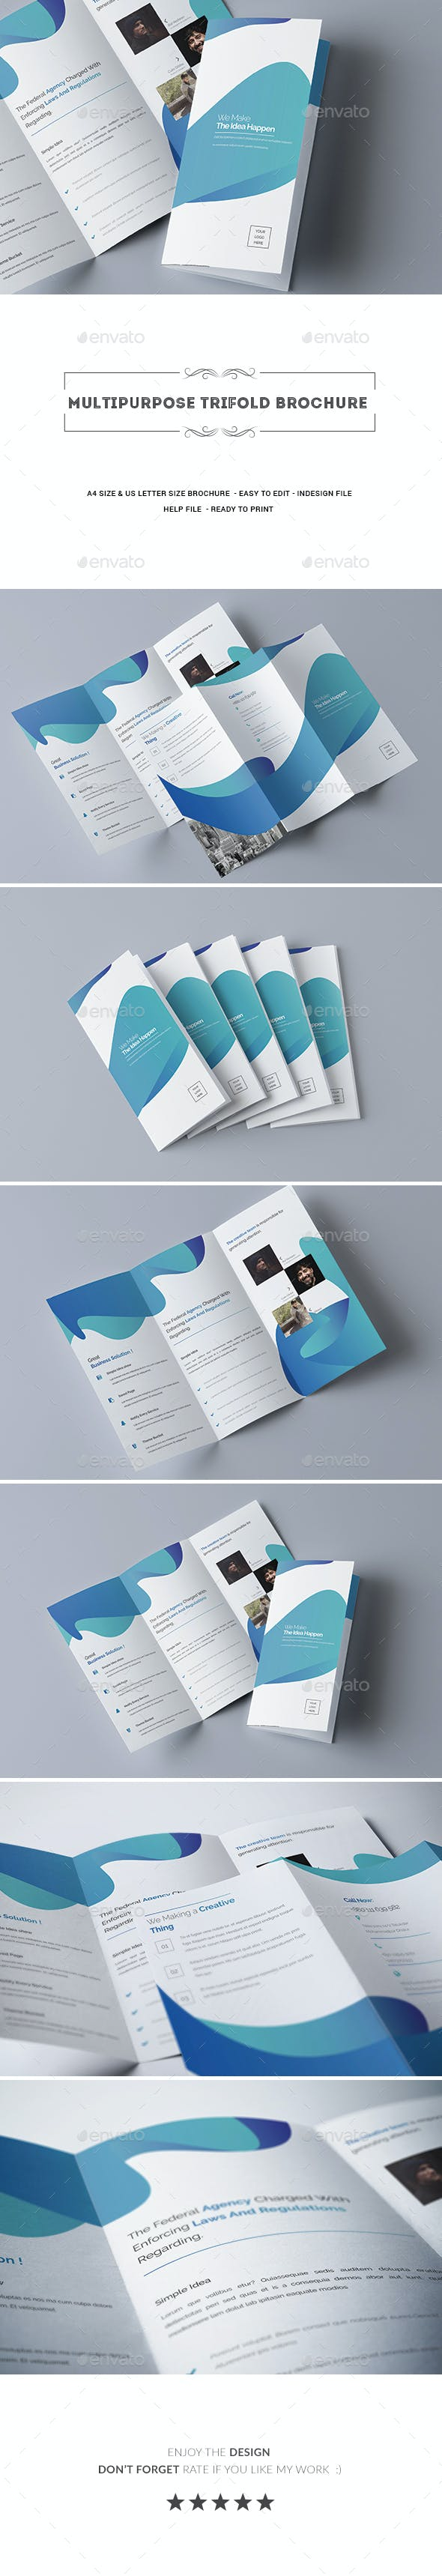 multipurpose trifold brochure by addaxx graphicriver